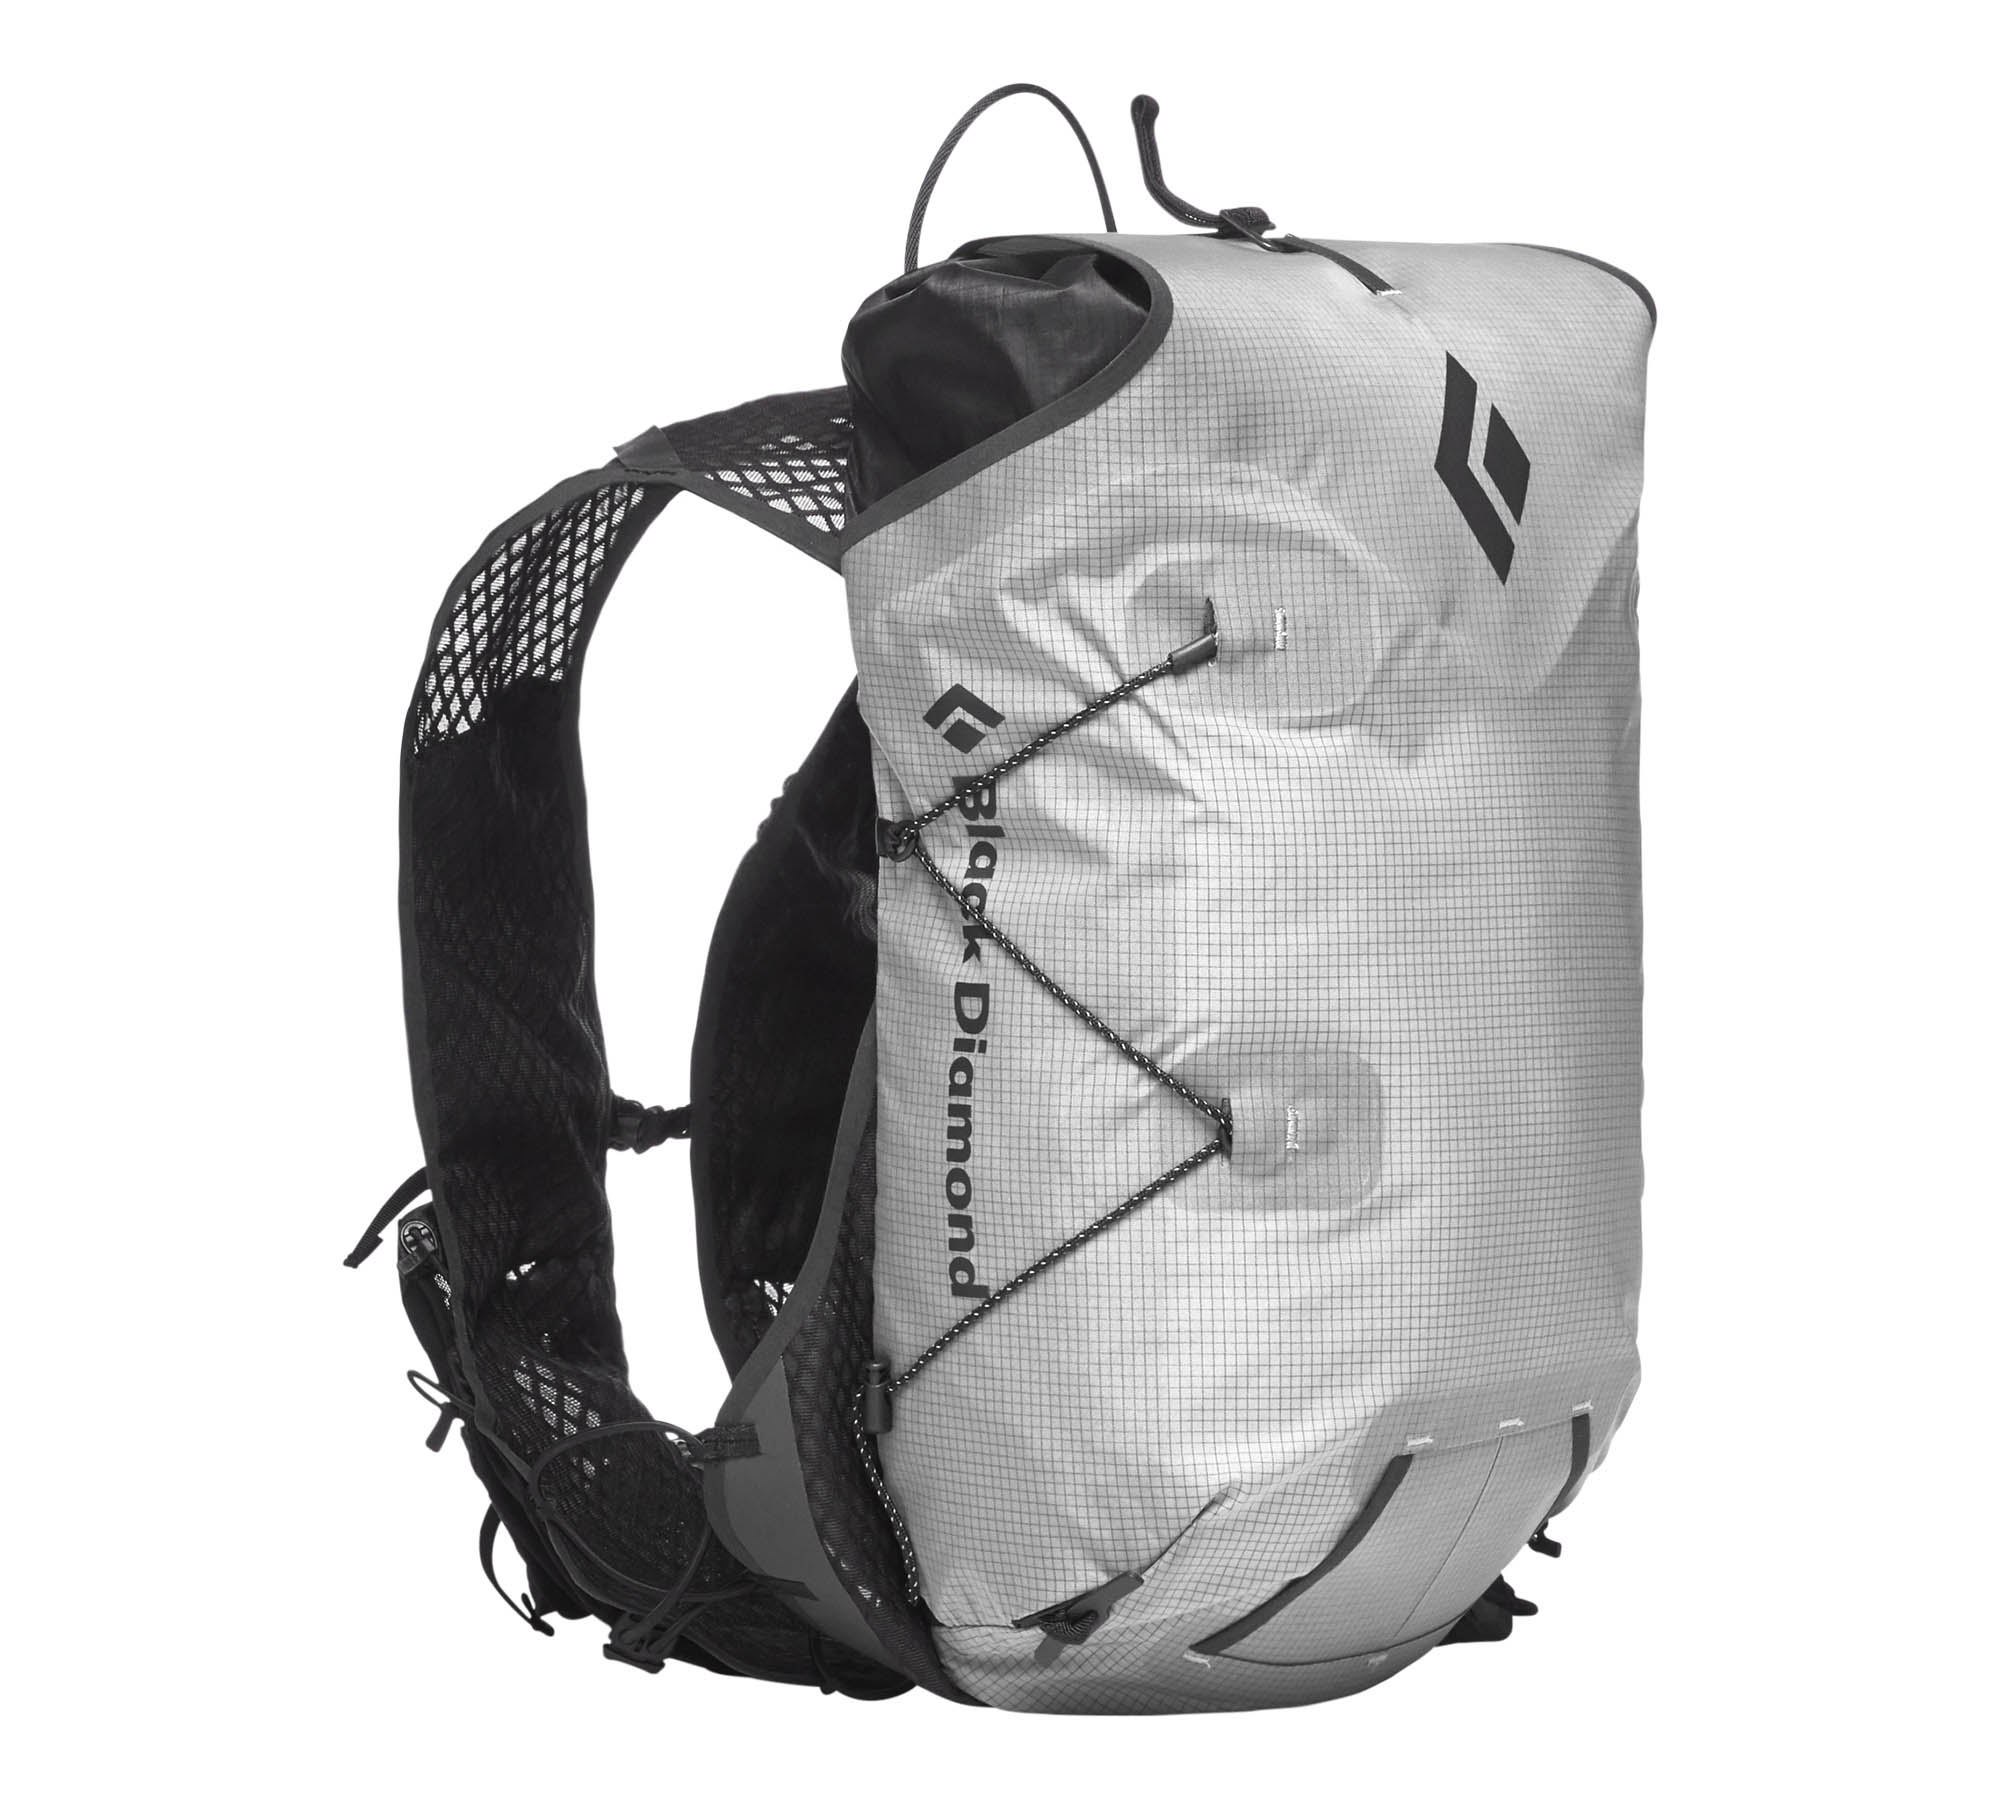 681224_1000_Alloy_DISTANCE15BACKPACK.jpg